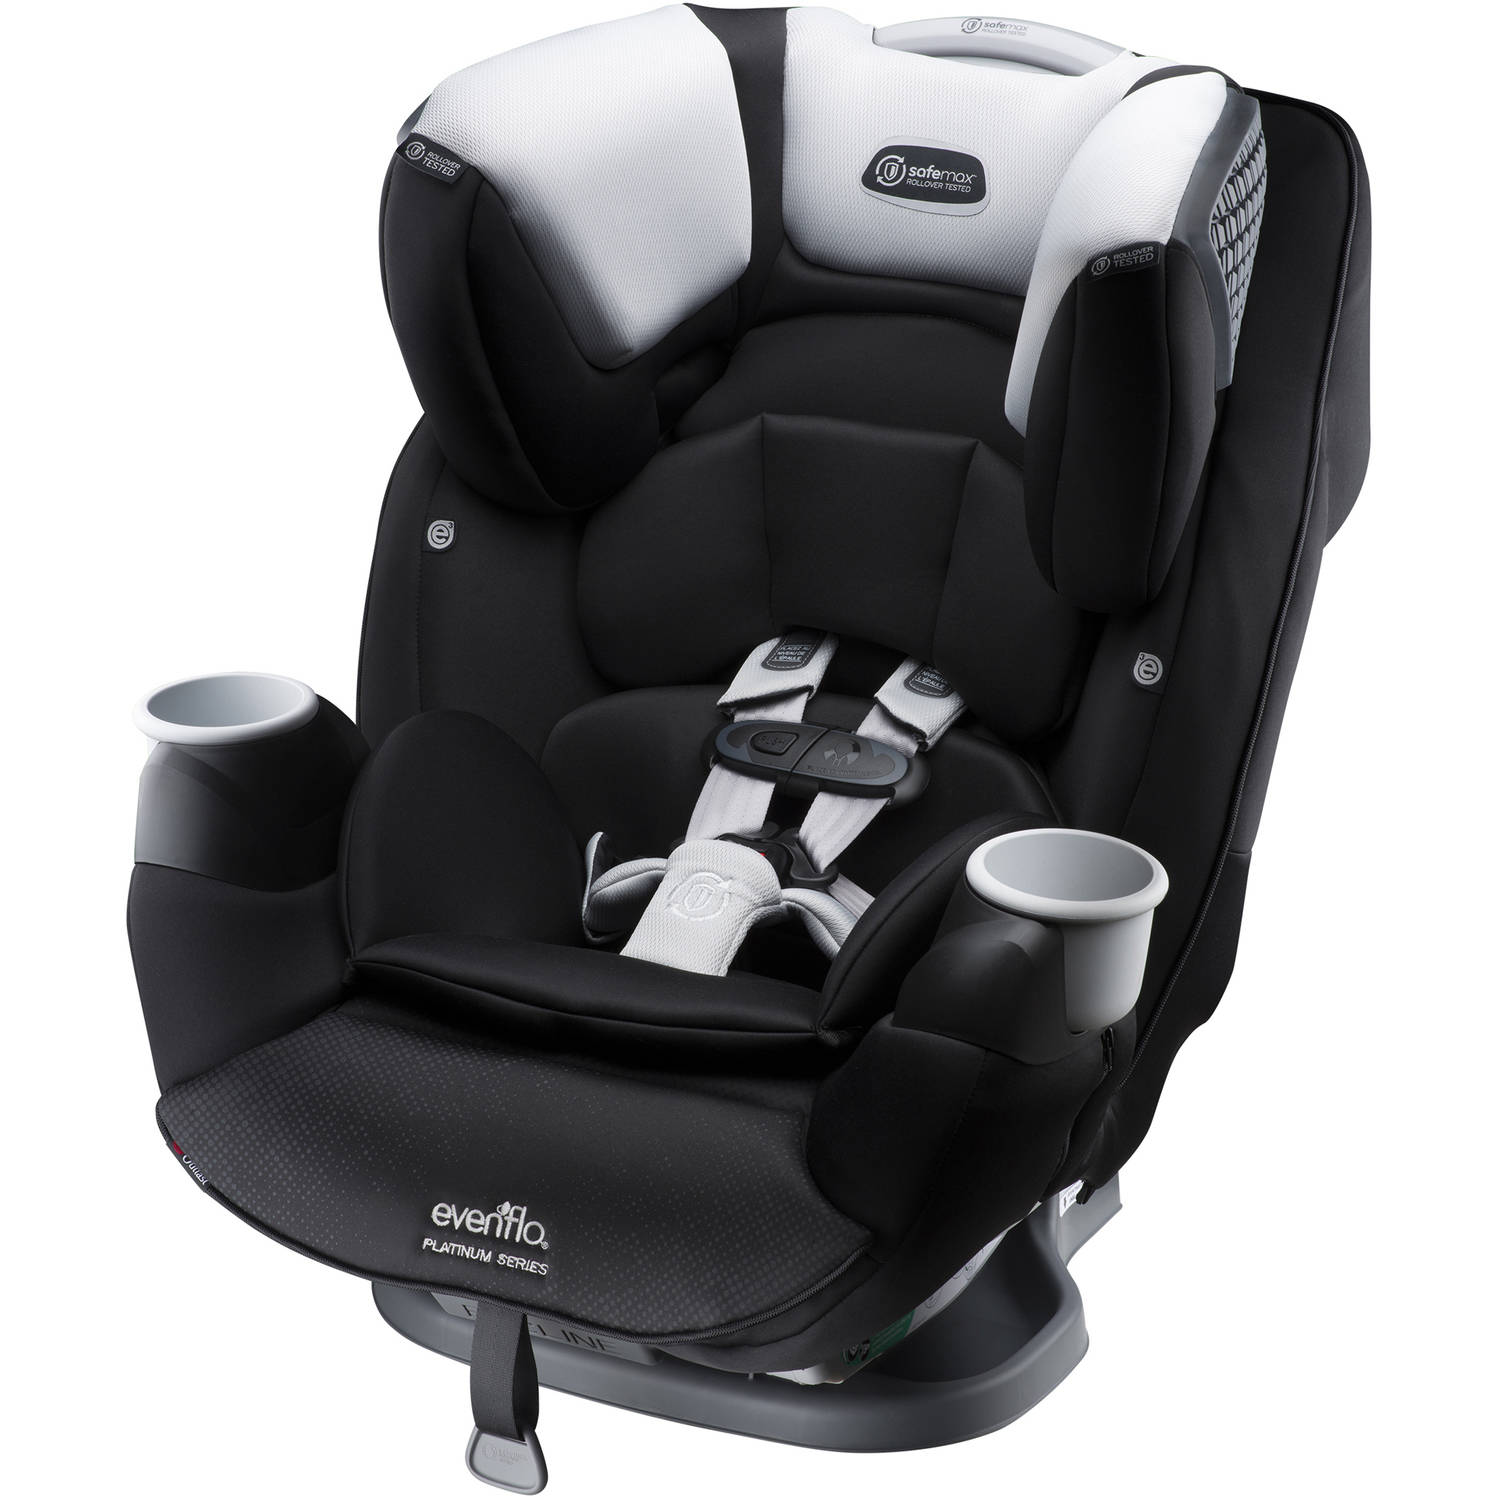 Evenflo Platinum SafeMax All-In-One Convertible Car Seat, Shiloh by Evenflo